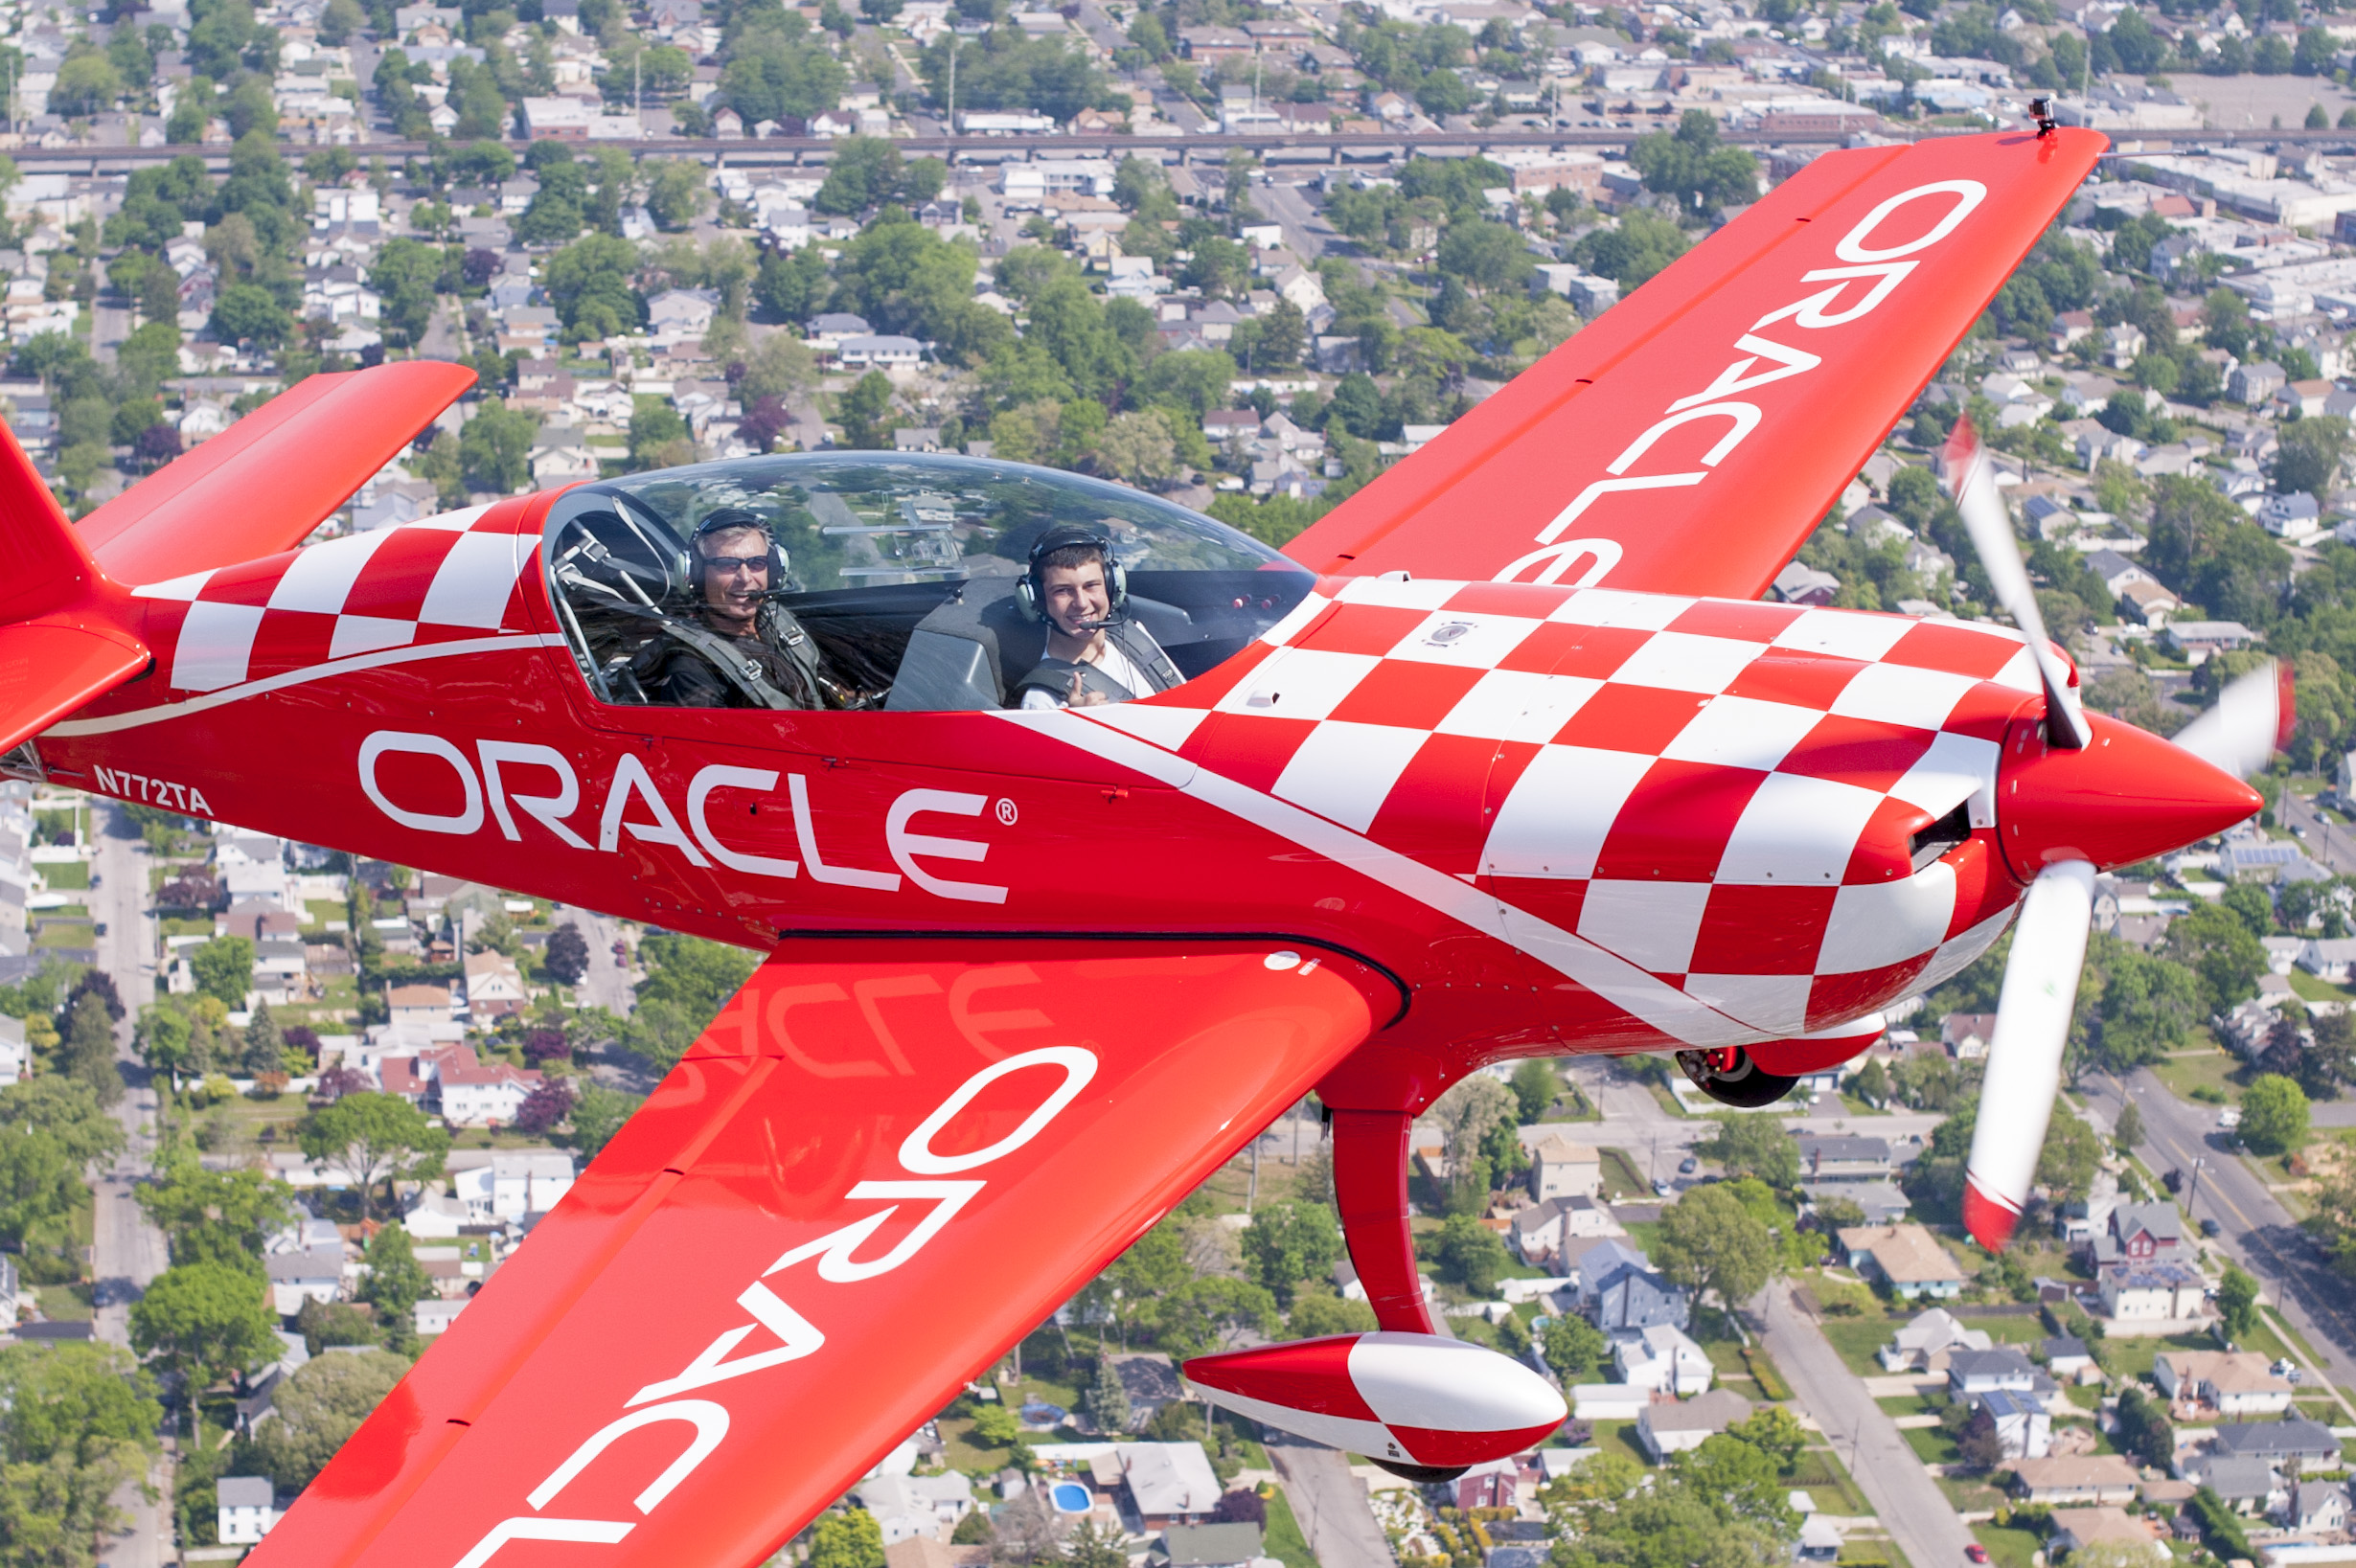 Alex Moynihan found himself earning his first set of wings as a Young Eagle with the legendary pilot Sean Tucker, who celebrates this year the 40th anniversary of his very first air show.